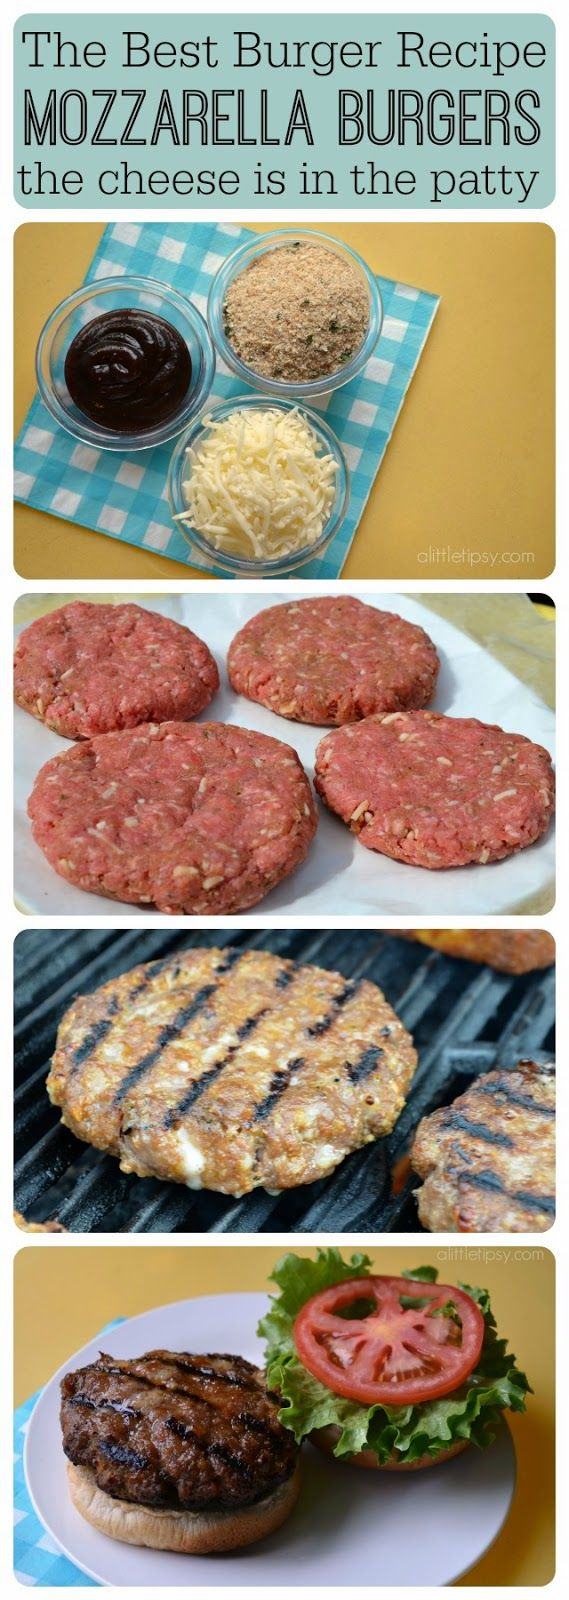 The Best Burger Recipe - Mozzarella Burgers #BBQ